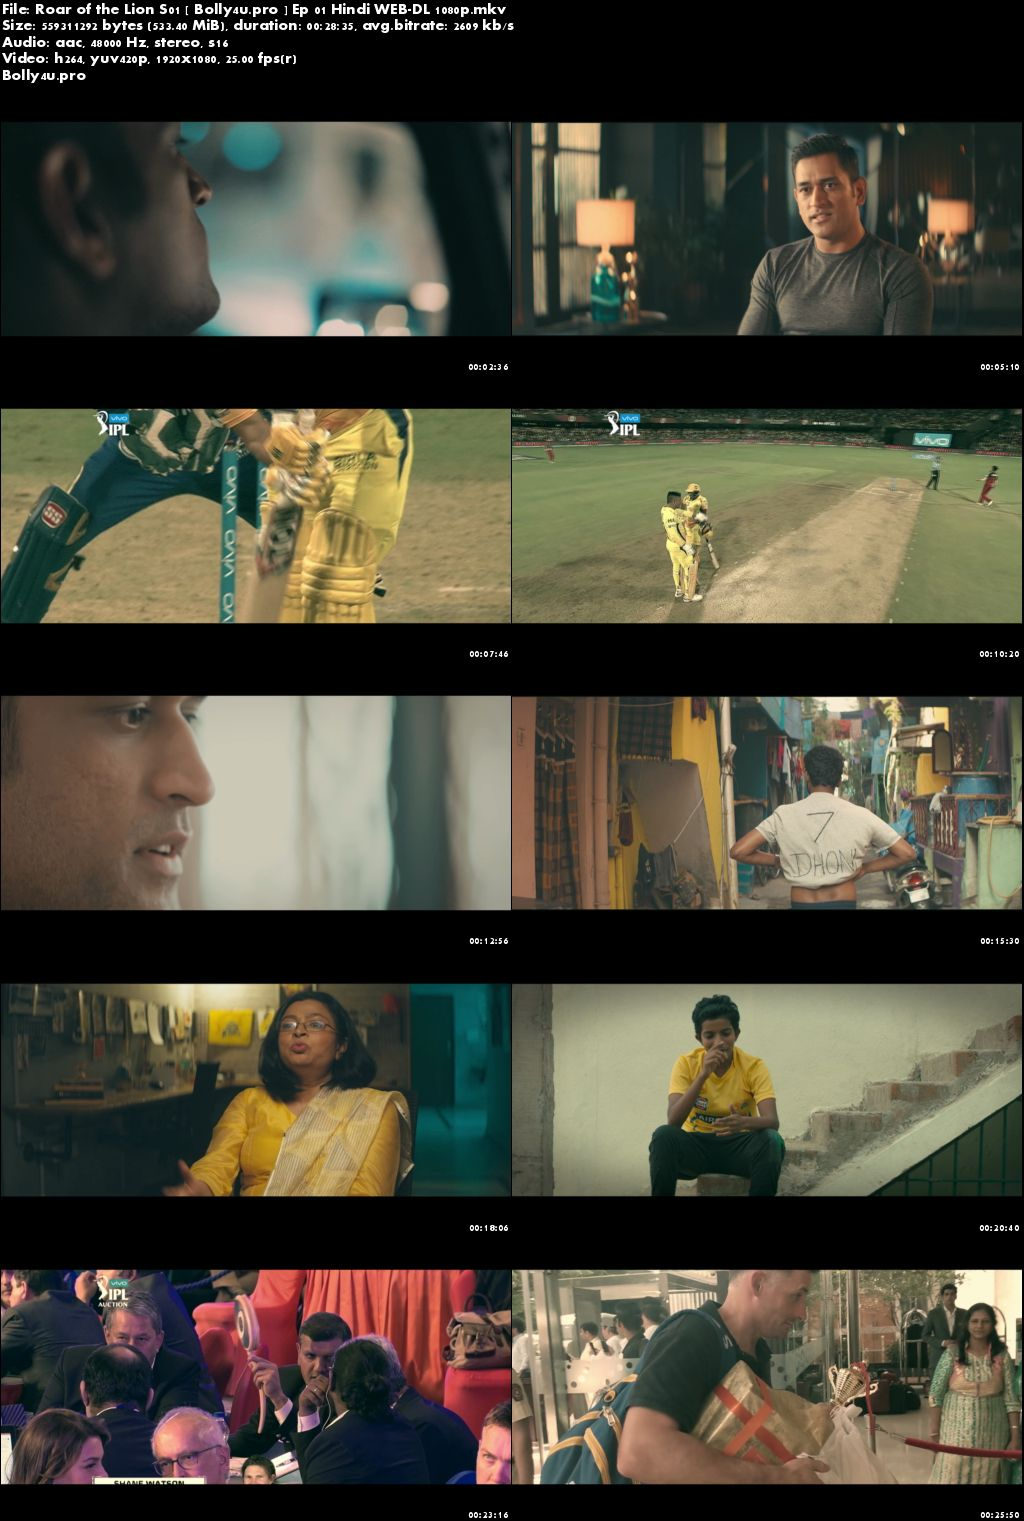 Roar of the Lion 2019 WEB-DL 2GB Complete S01 Hindi 1080p Download